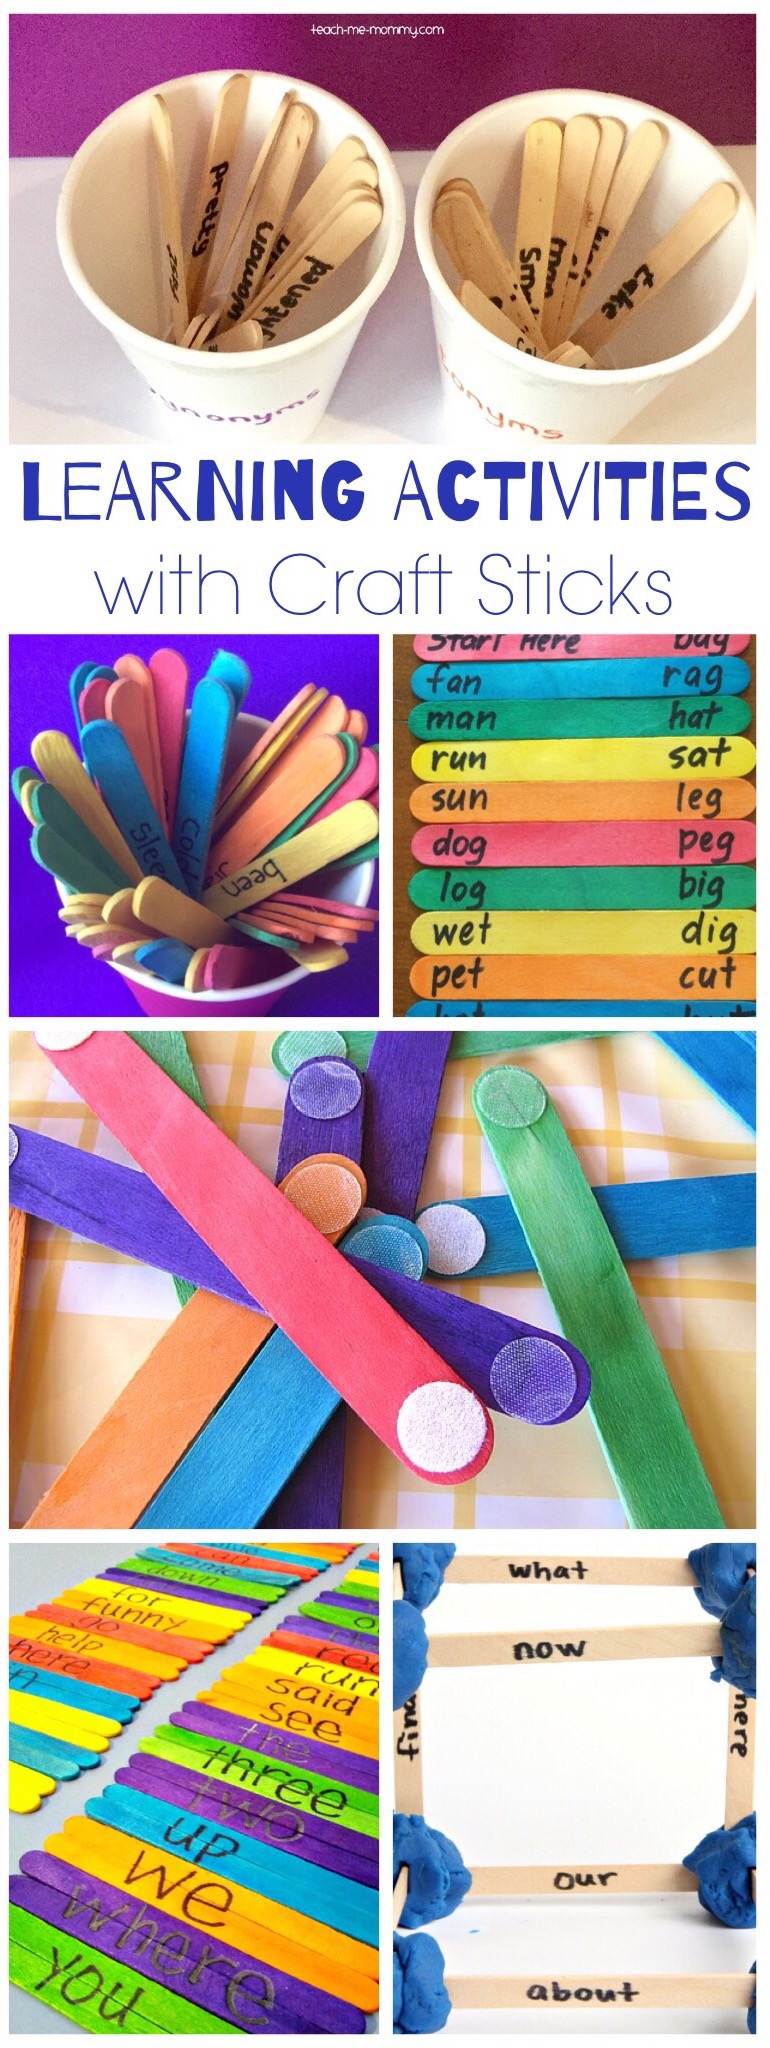 Learning Activities with craft sticks